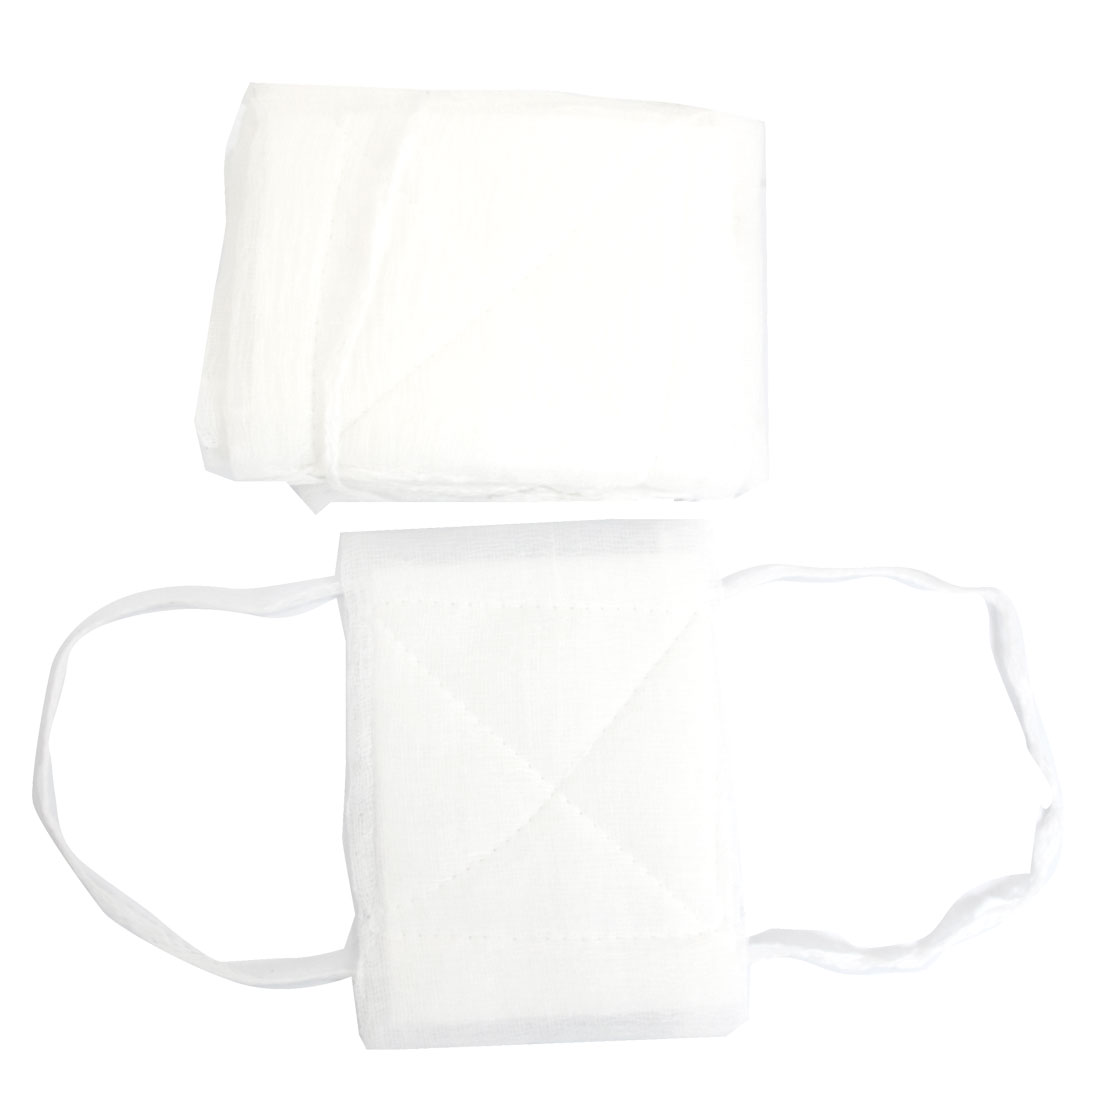 12.5cm x 16.5cm Washable Health White Gauze Coverd Face Mouth Mask 10 Pcs